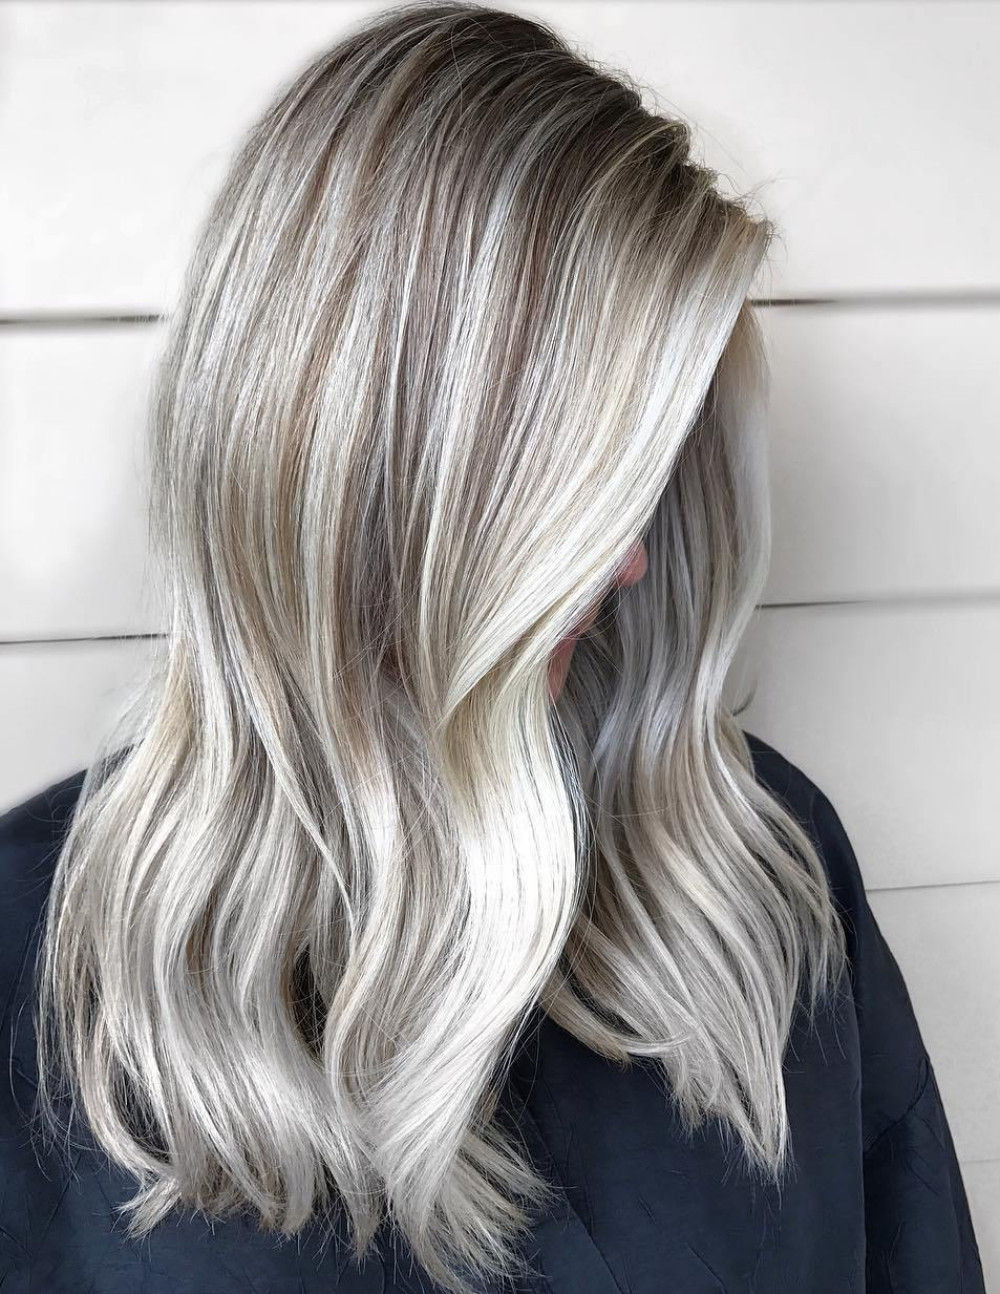 50 Pretty Ideas of Silver Highlights - Hair Adviser